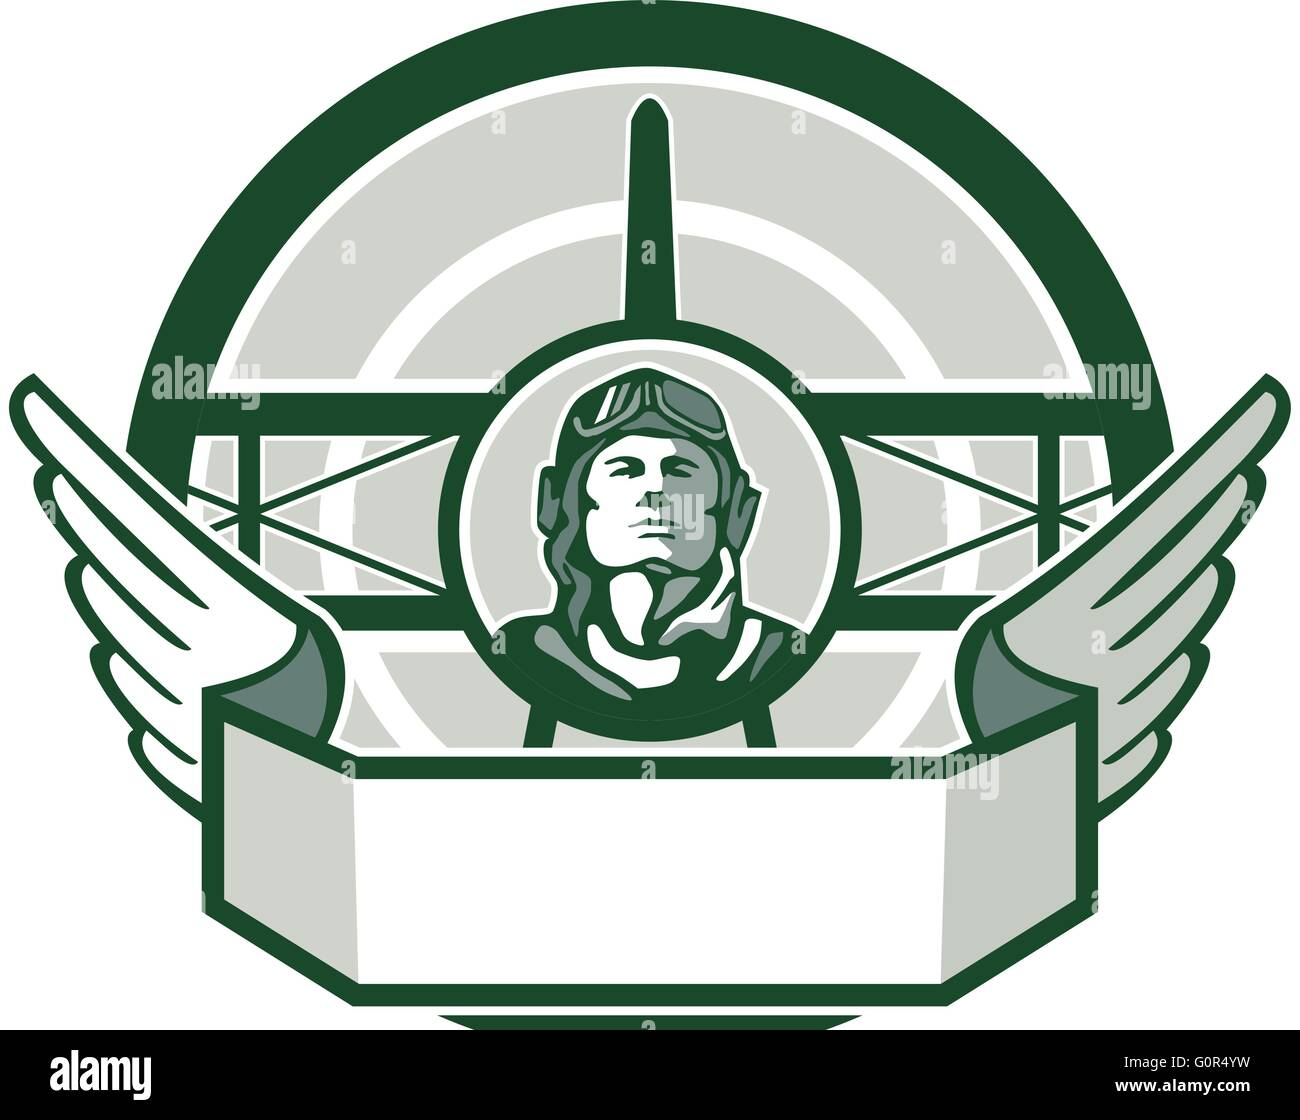 Illustration of a vintage world war one pilot airman aviator bust with spad biplane fighter plane front in background - Stock Vector